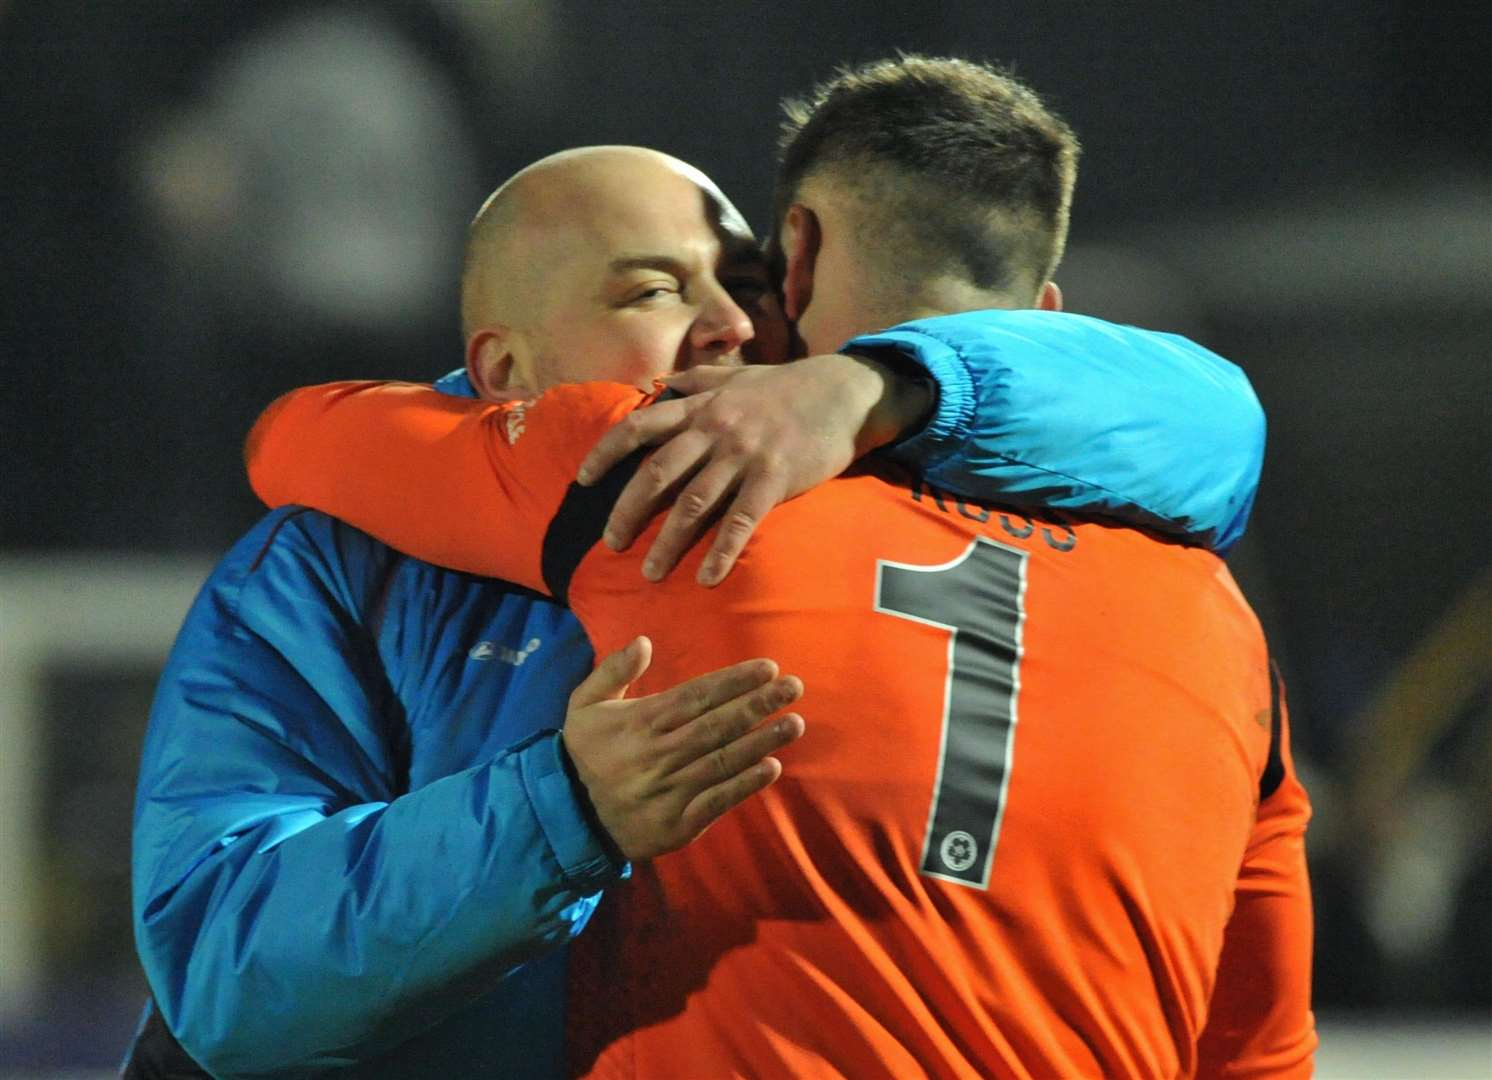 Caretaker boss Tristan Lewis embraces Ethan Ross after the final whistle at Hartlepool Picture: Steve Terrell